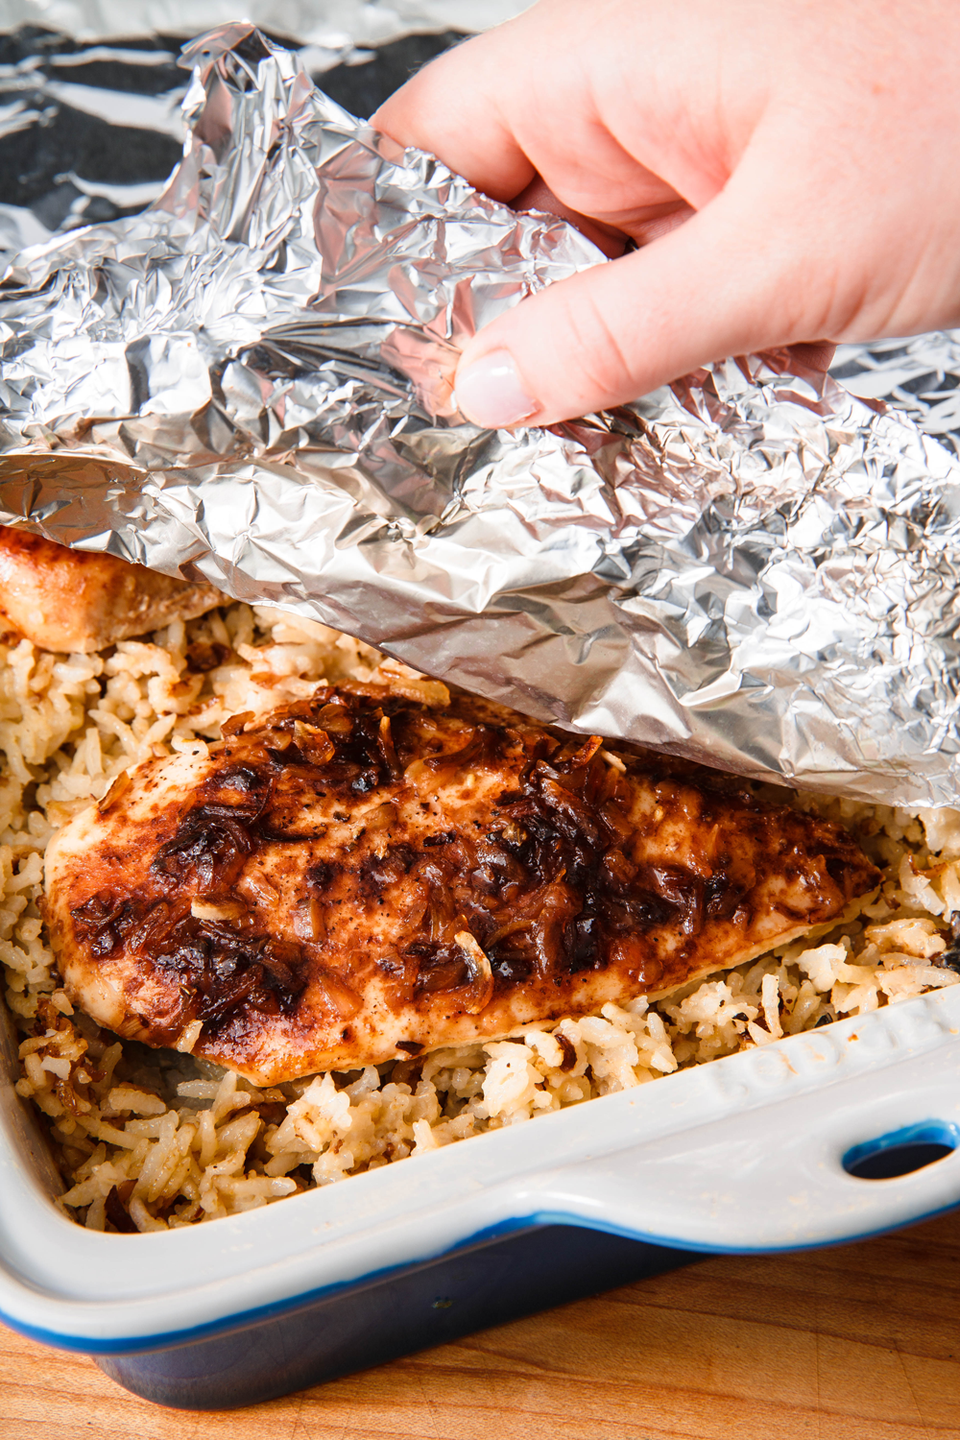 """<p>You basically just throw all the ingredients into a baking dish and let the oven do the rest. </p><p>Get the recipe from <a href=""""https://www.delish.com/cooking/recipe-ideas/a23871458/no-peek-chicken/"""" rel=""""nofollow noopener"""" target=""""_blank"""" data-ylk=""""slk:Delish"""" class=""""link rapid-noclick-resp"""">Delish</a>. </p>"""